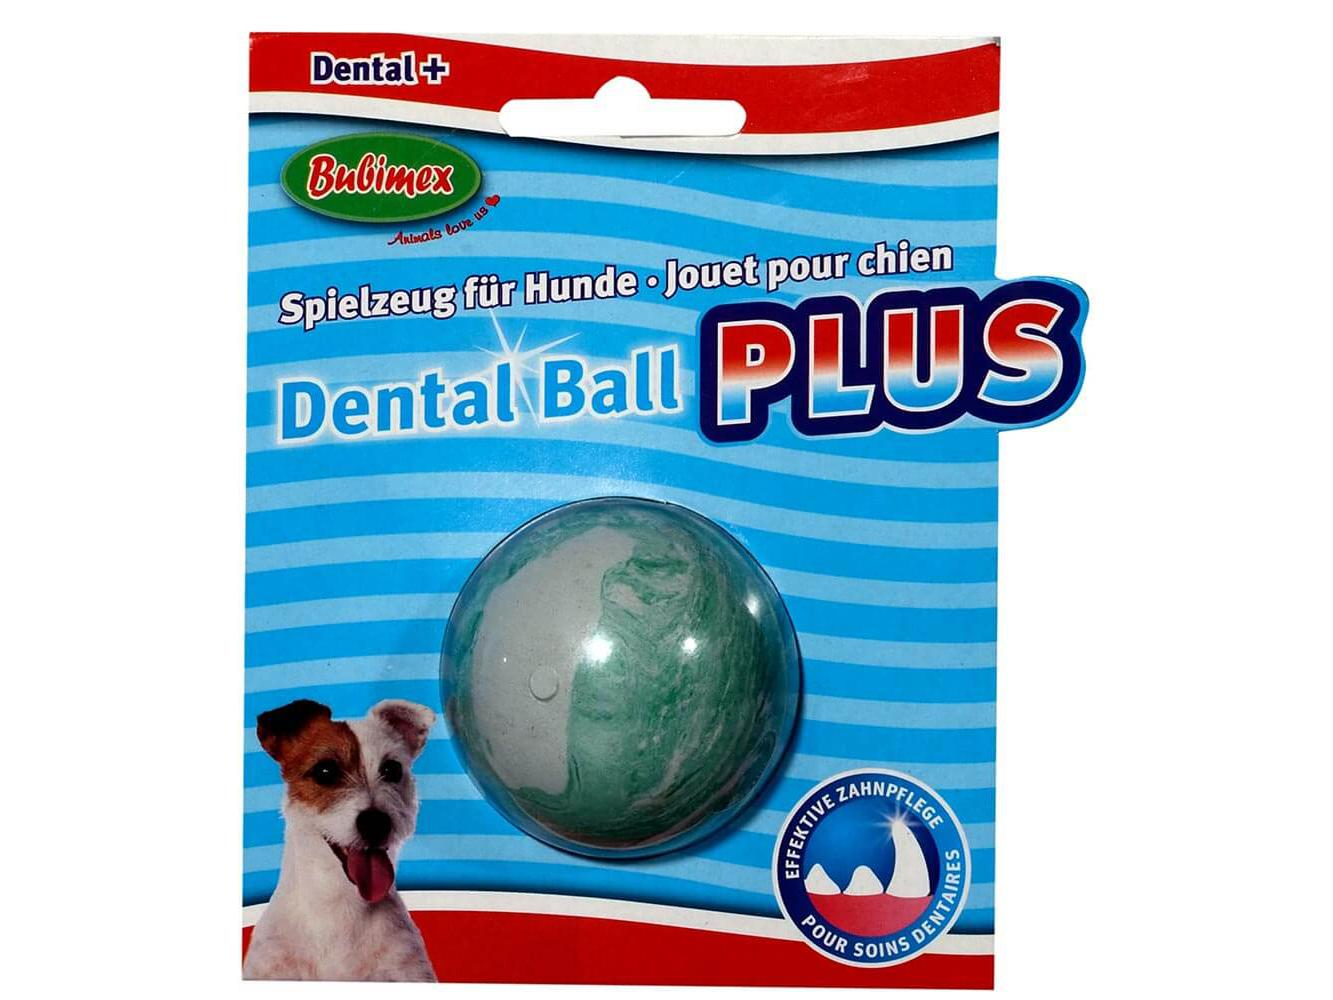 Bubimex Dental Ball Plus